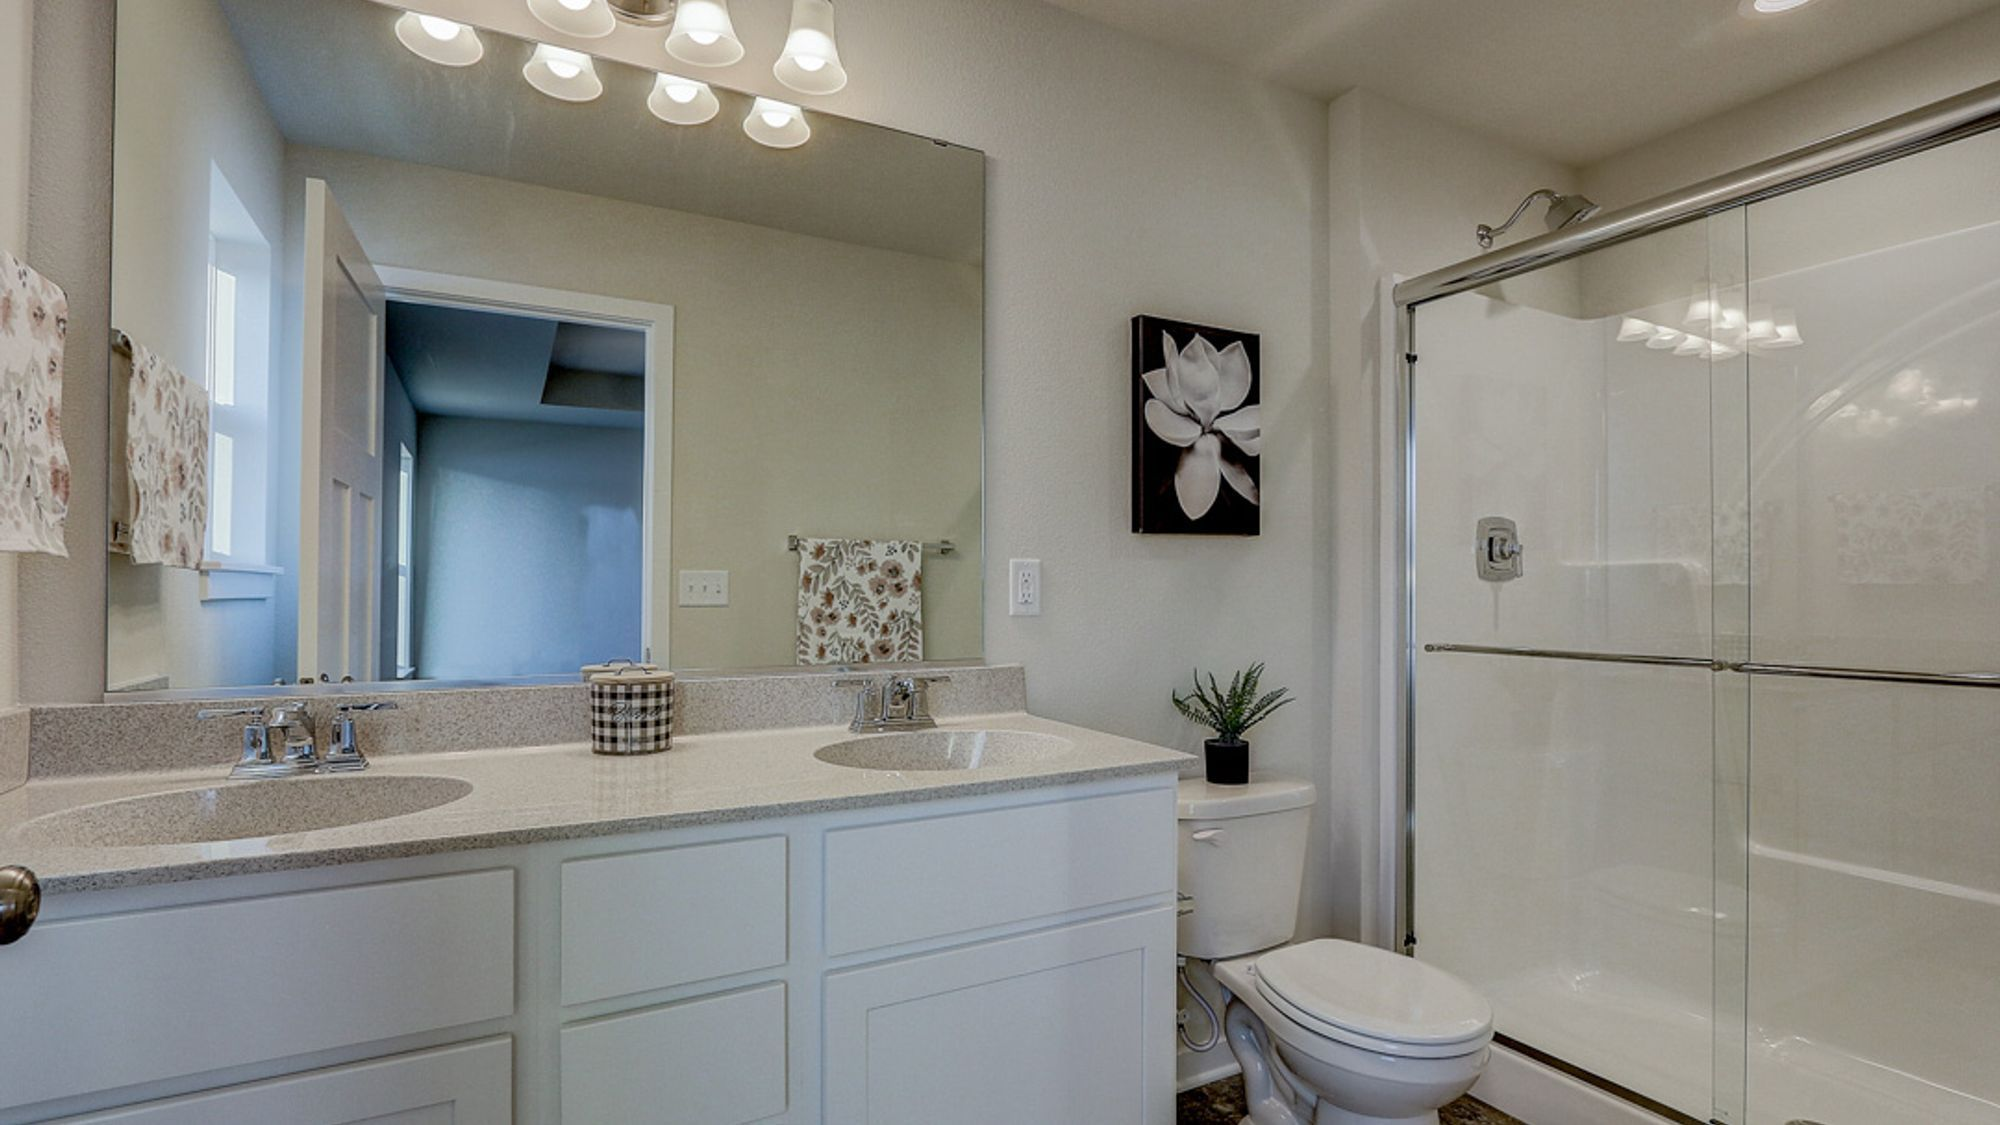 Bathroom featured in The Caspian By Harbor Homes in Washington-Fond du Lac, WI